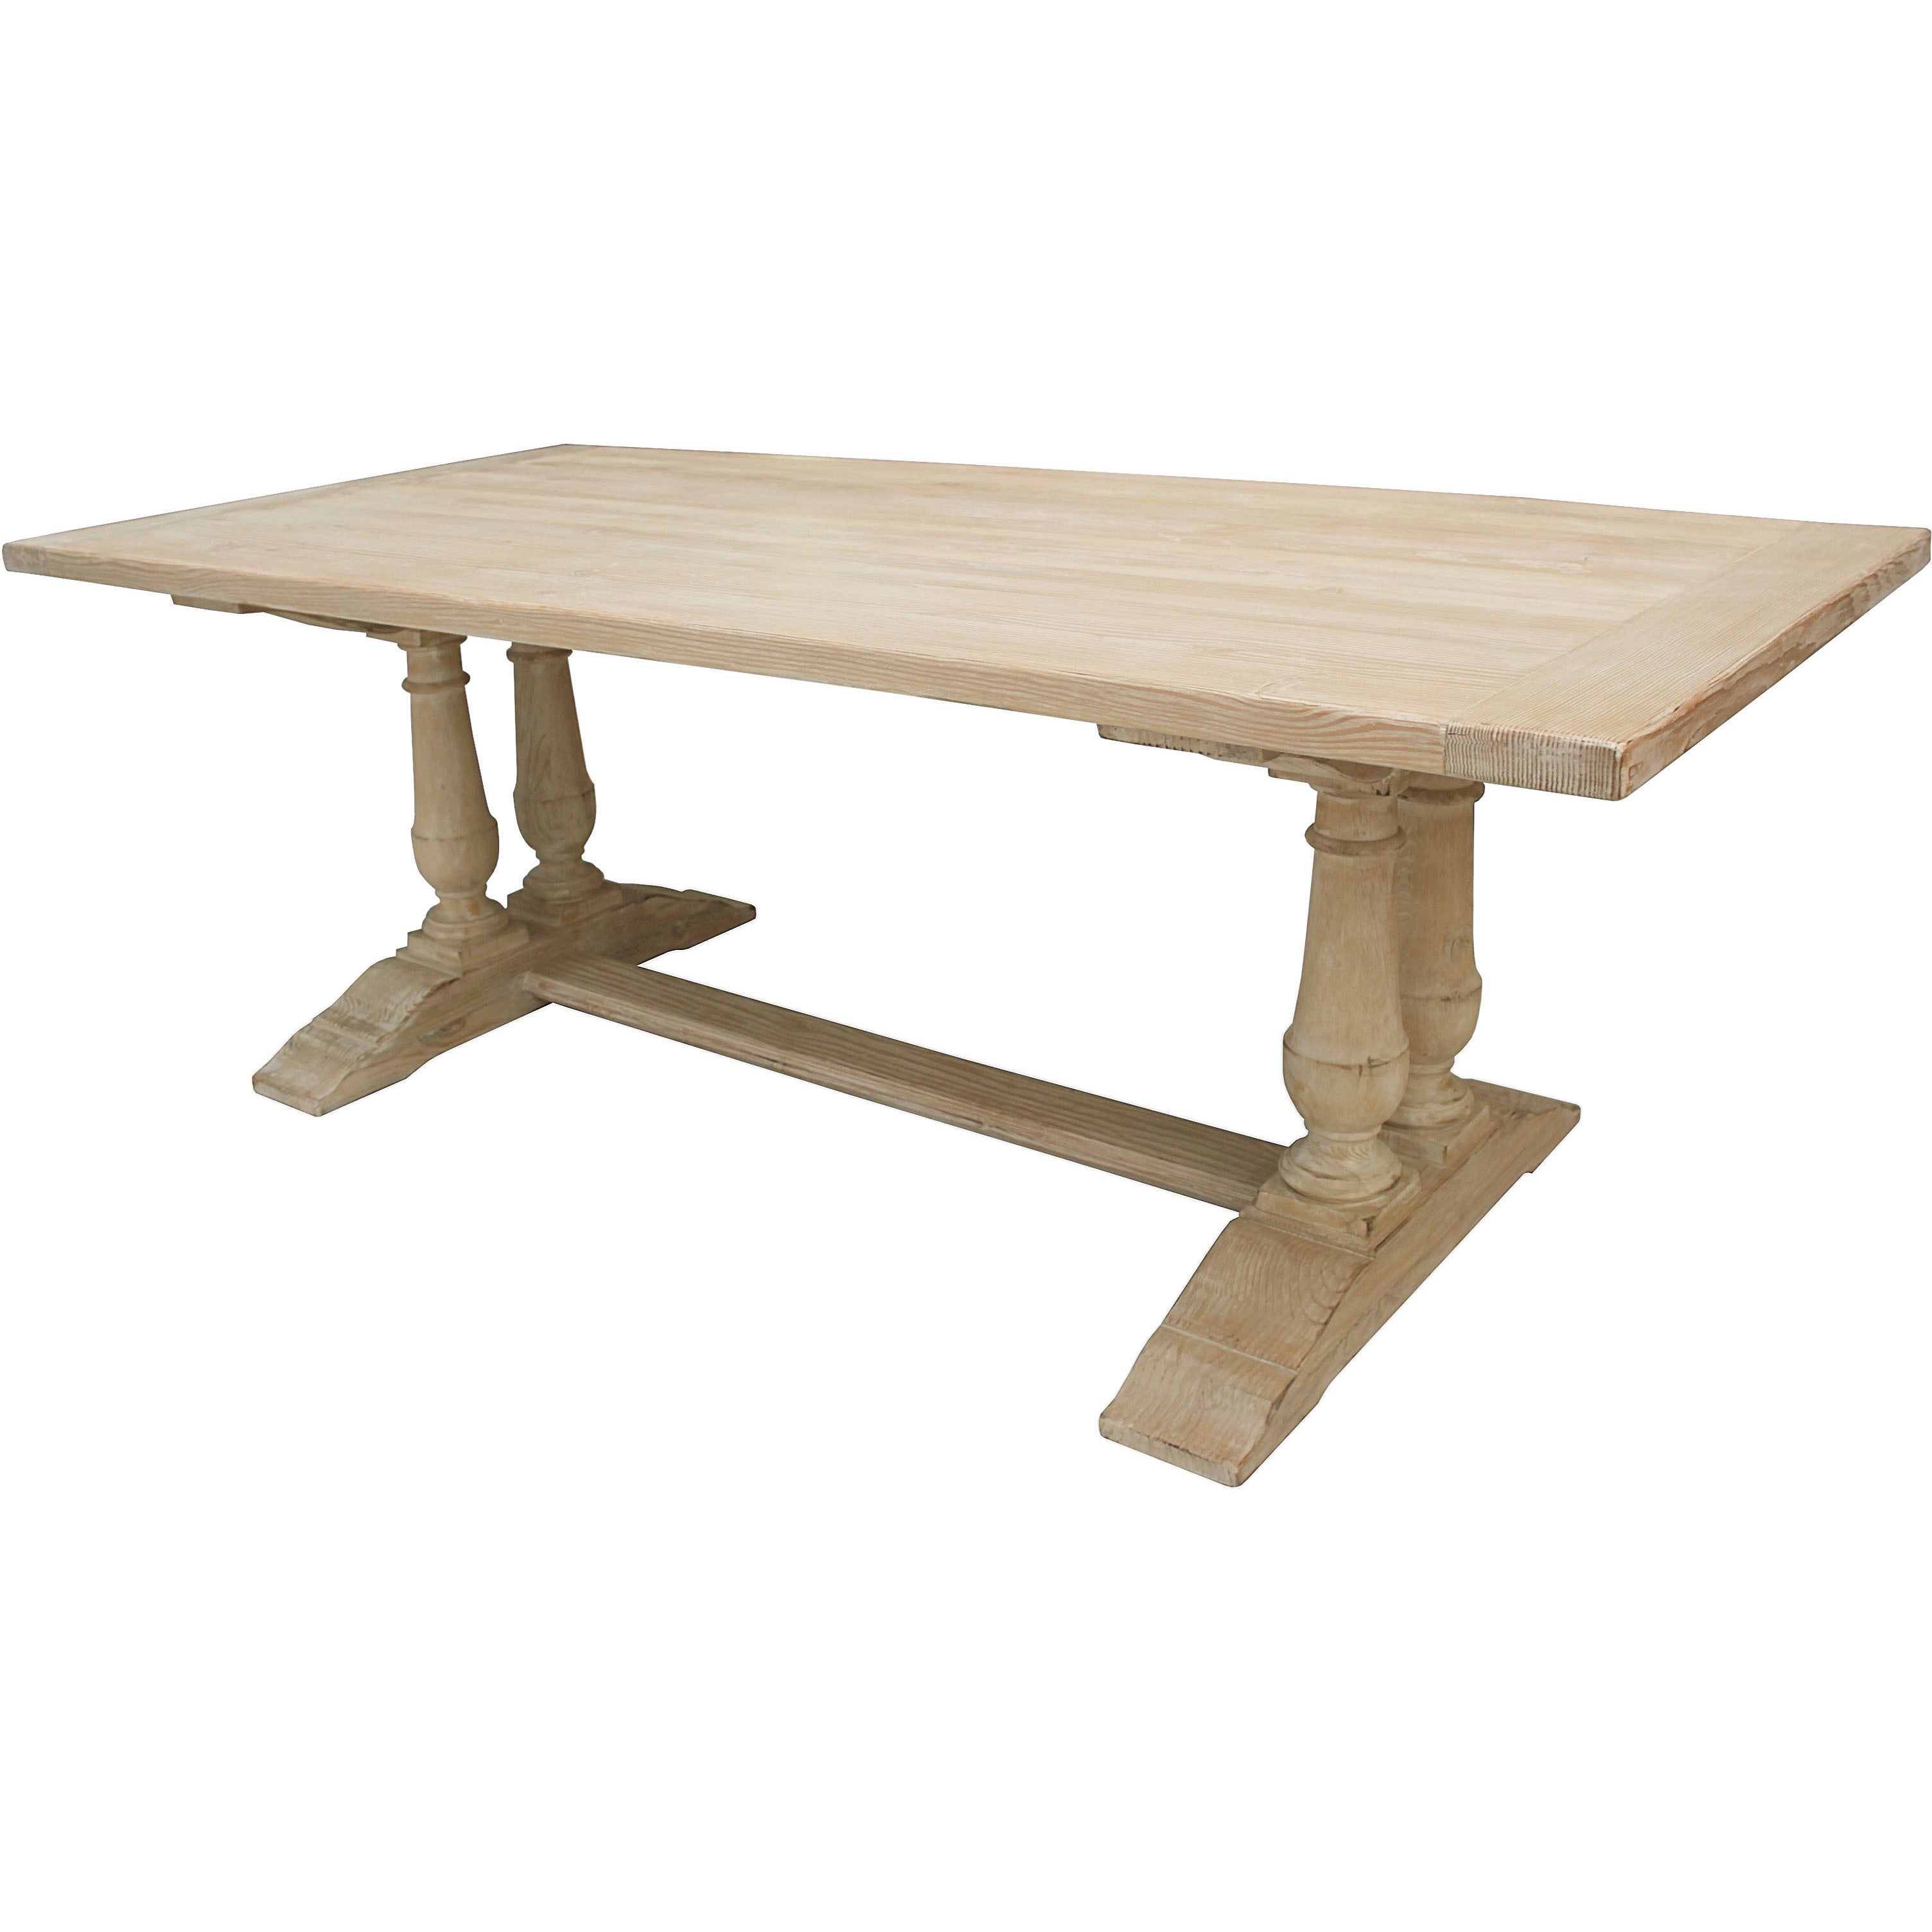 1Cheap Capistrano Reclaimed Wood Dining Table  : Capistrano Rectangular Dining Table d7f94da2 876a 4a85 8d8f c8aeddcfca0a from affordablediningroom2015.weebly.com size 3008 x 3008 jpeg 152kB